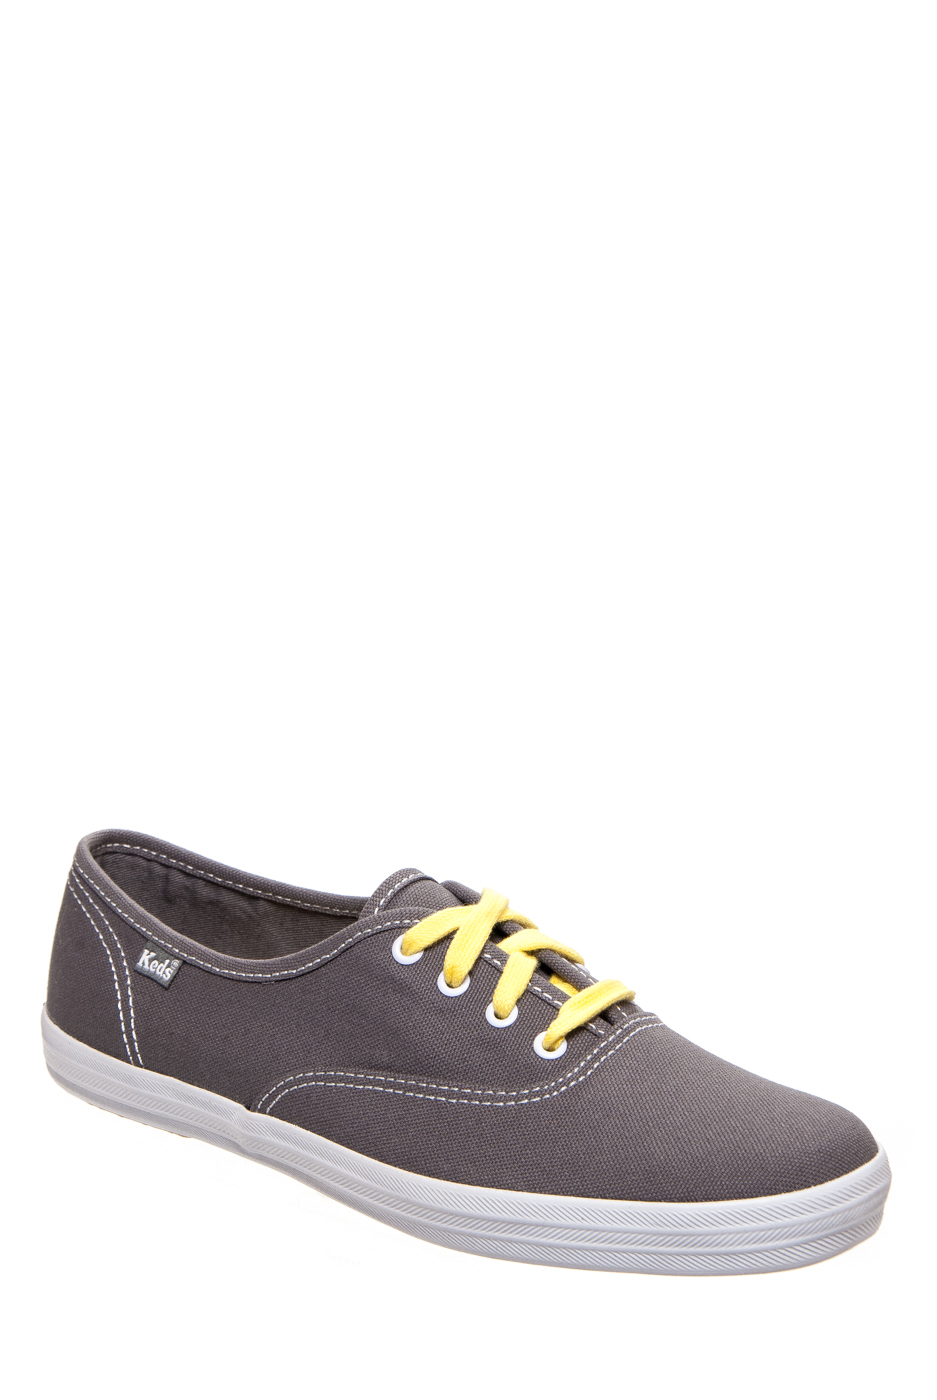 KEDS Champion Ox Low Top Sneakers - Graphite